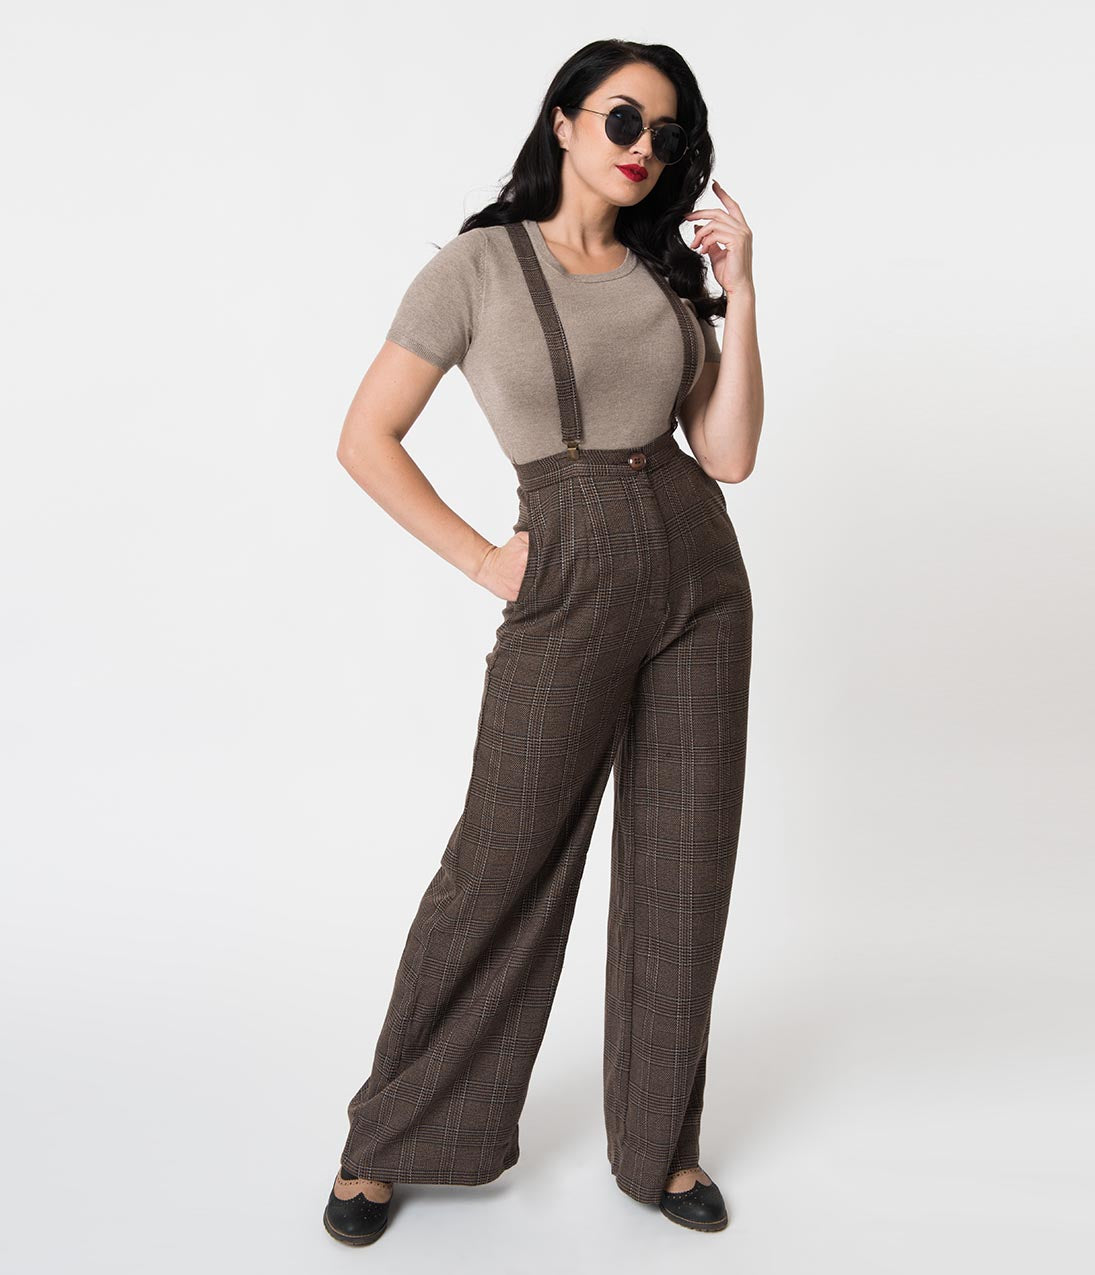 Vintage High Waisted Trousers, Sailor Pants, Jeans Collectif 1940S Style Brown Librarian Check High Waist Glinda Suspender Pants $58.00 AT vintagedancer.com